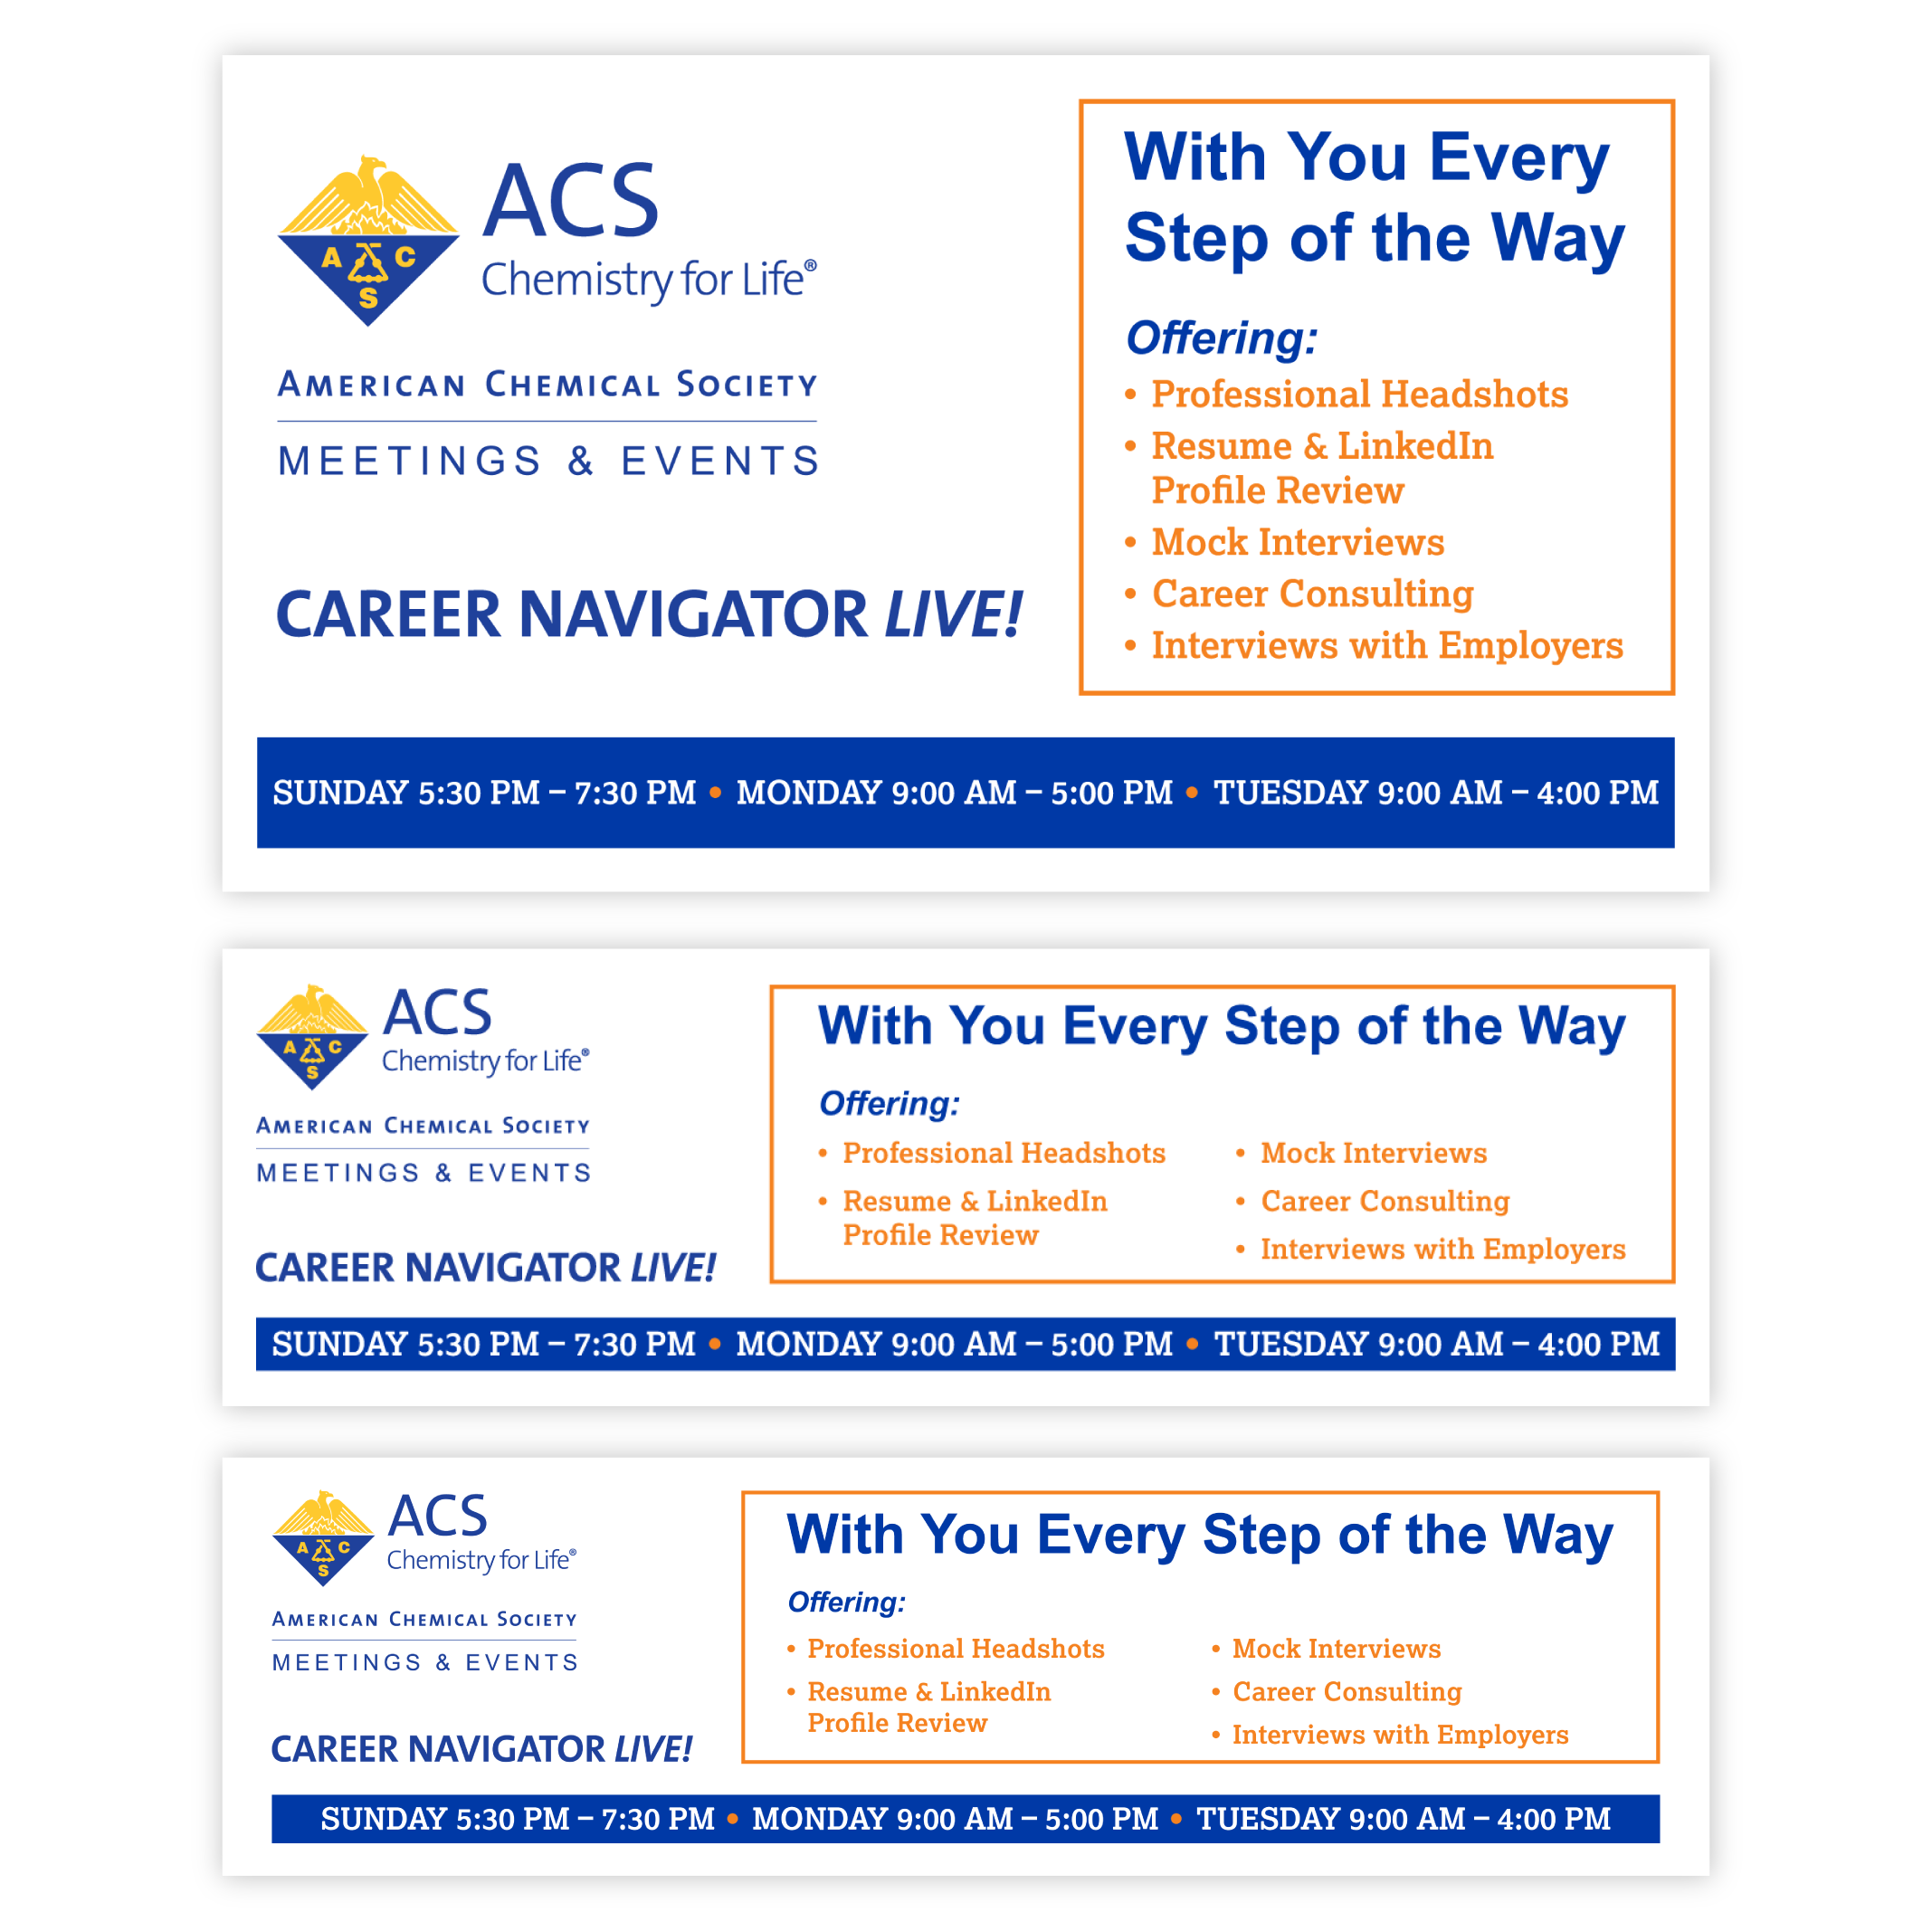 ACS Meetings & Events Career Navigator LIVE! gets its own branded electronic signage.